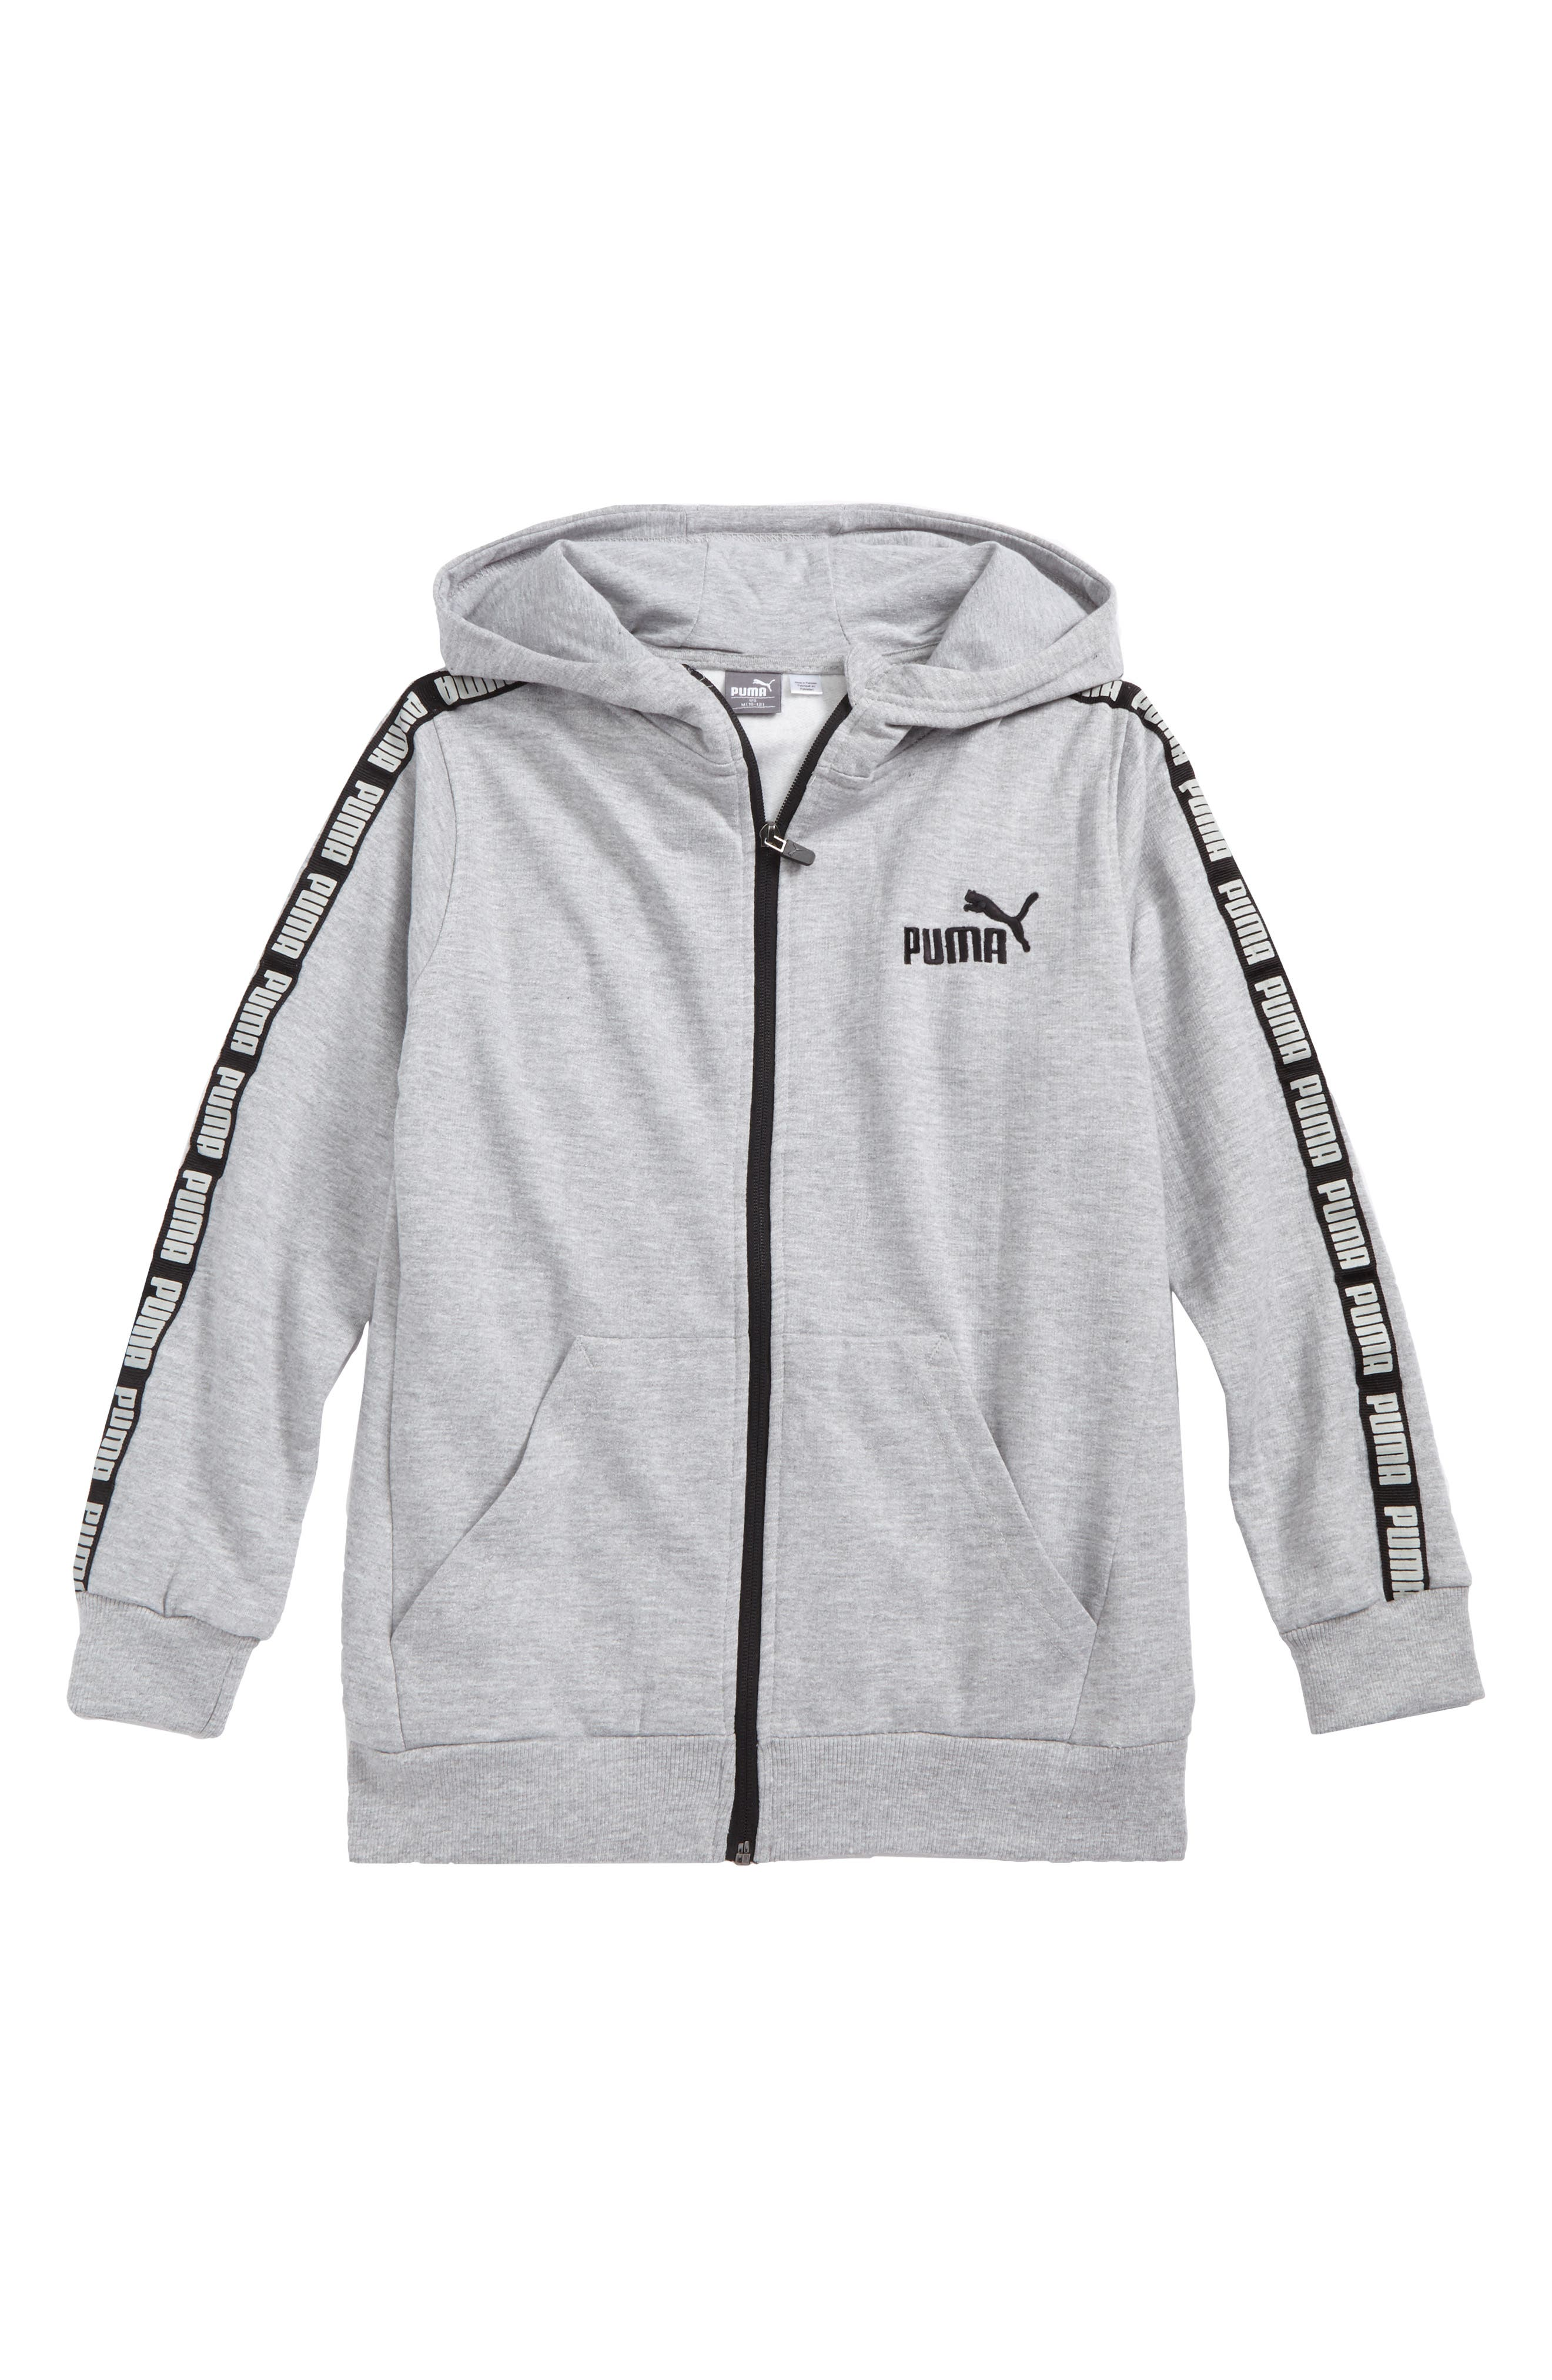 Graphic Zip Hoodie,                             Main thumbnail 1, color,                             Light Heather Grey